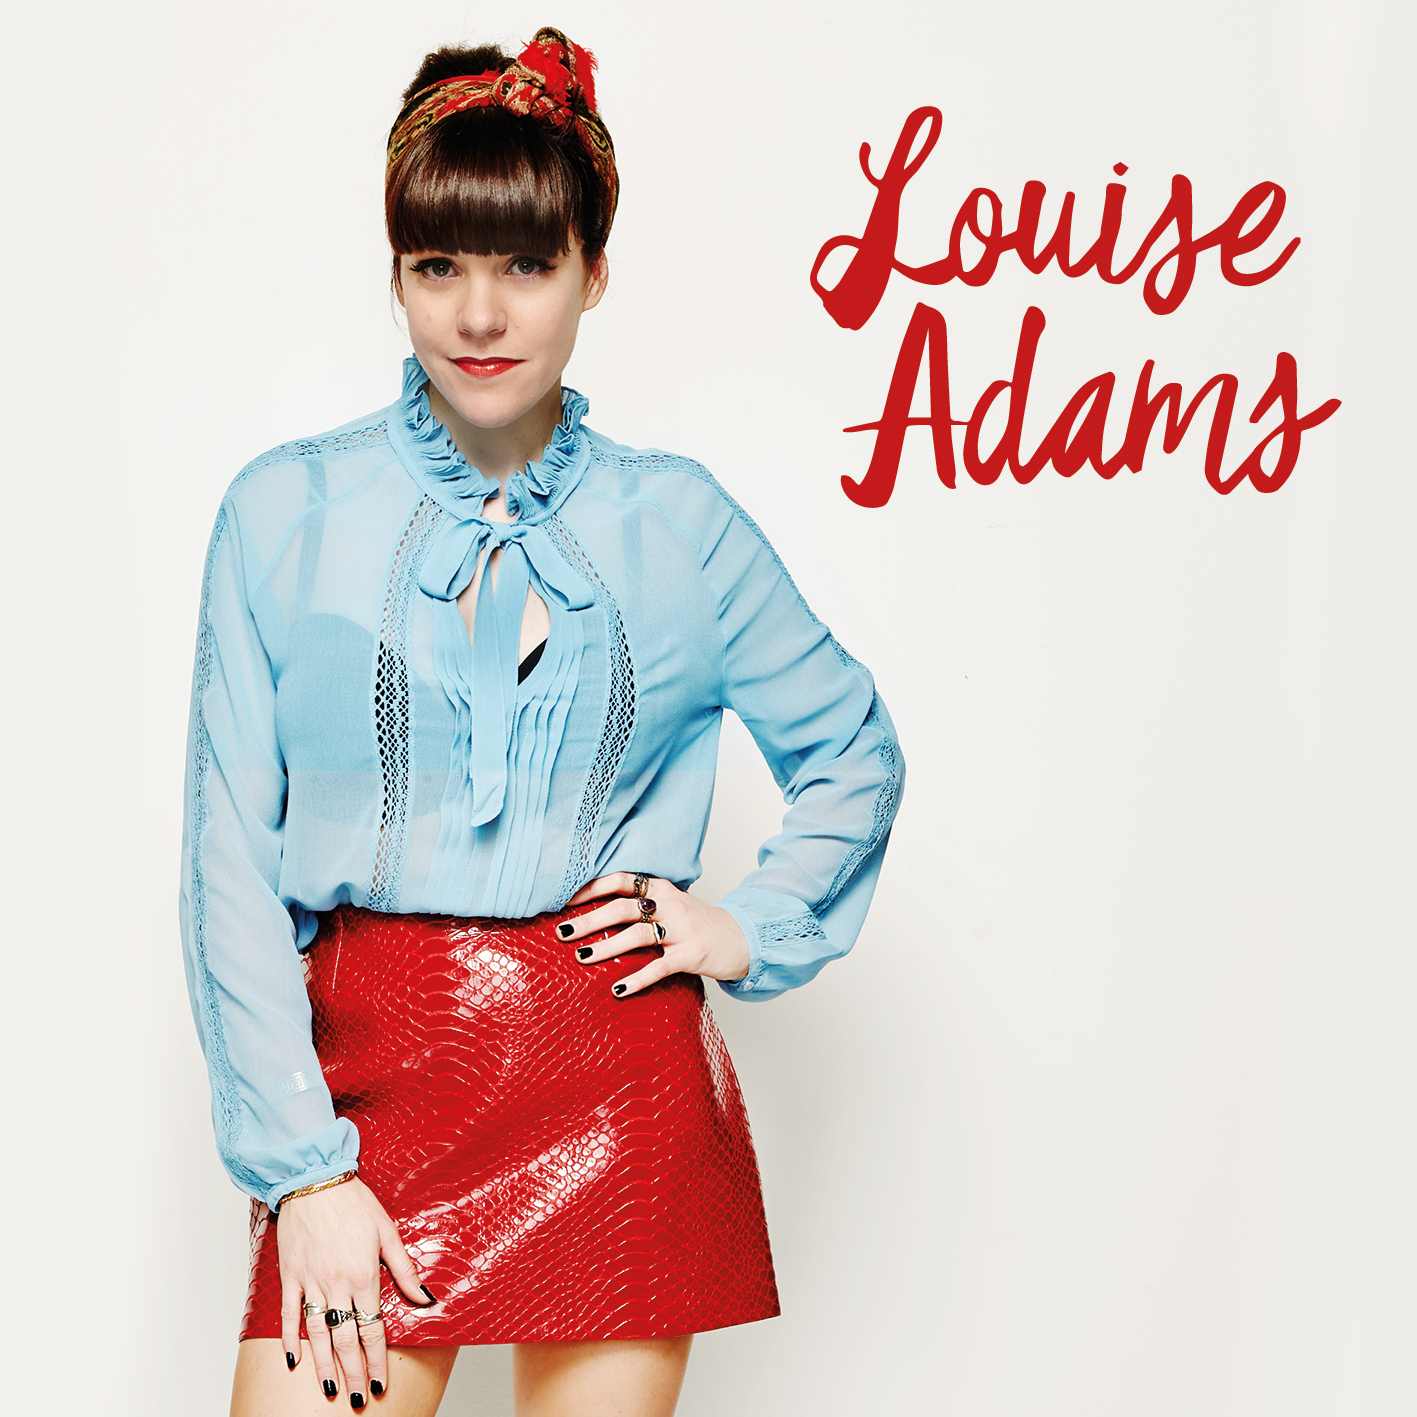 2015_10_LOUISE ADAMS Album.jpg